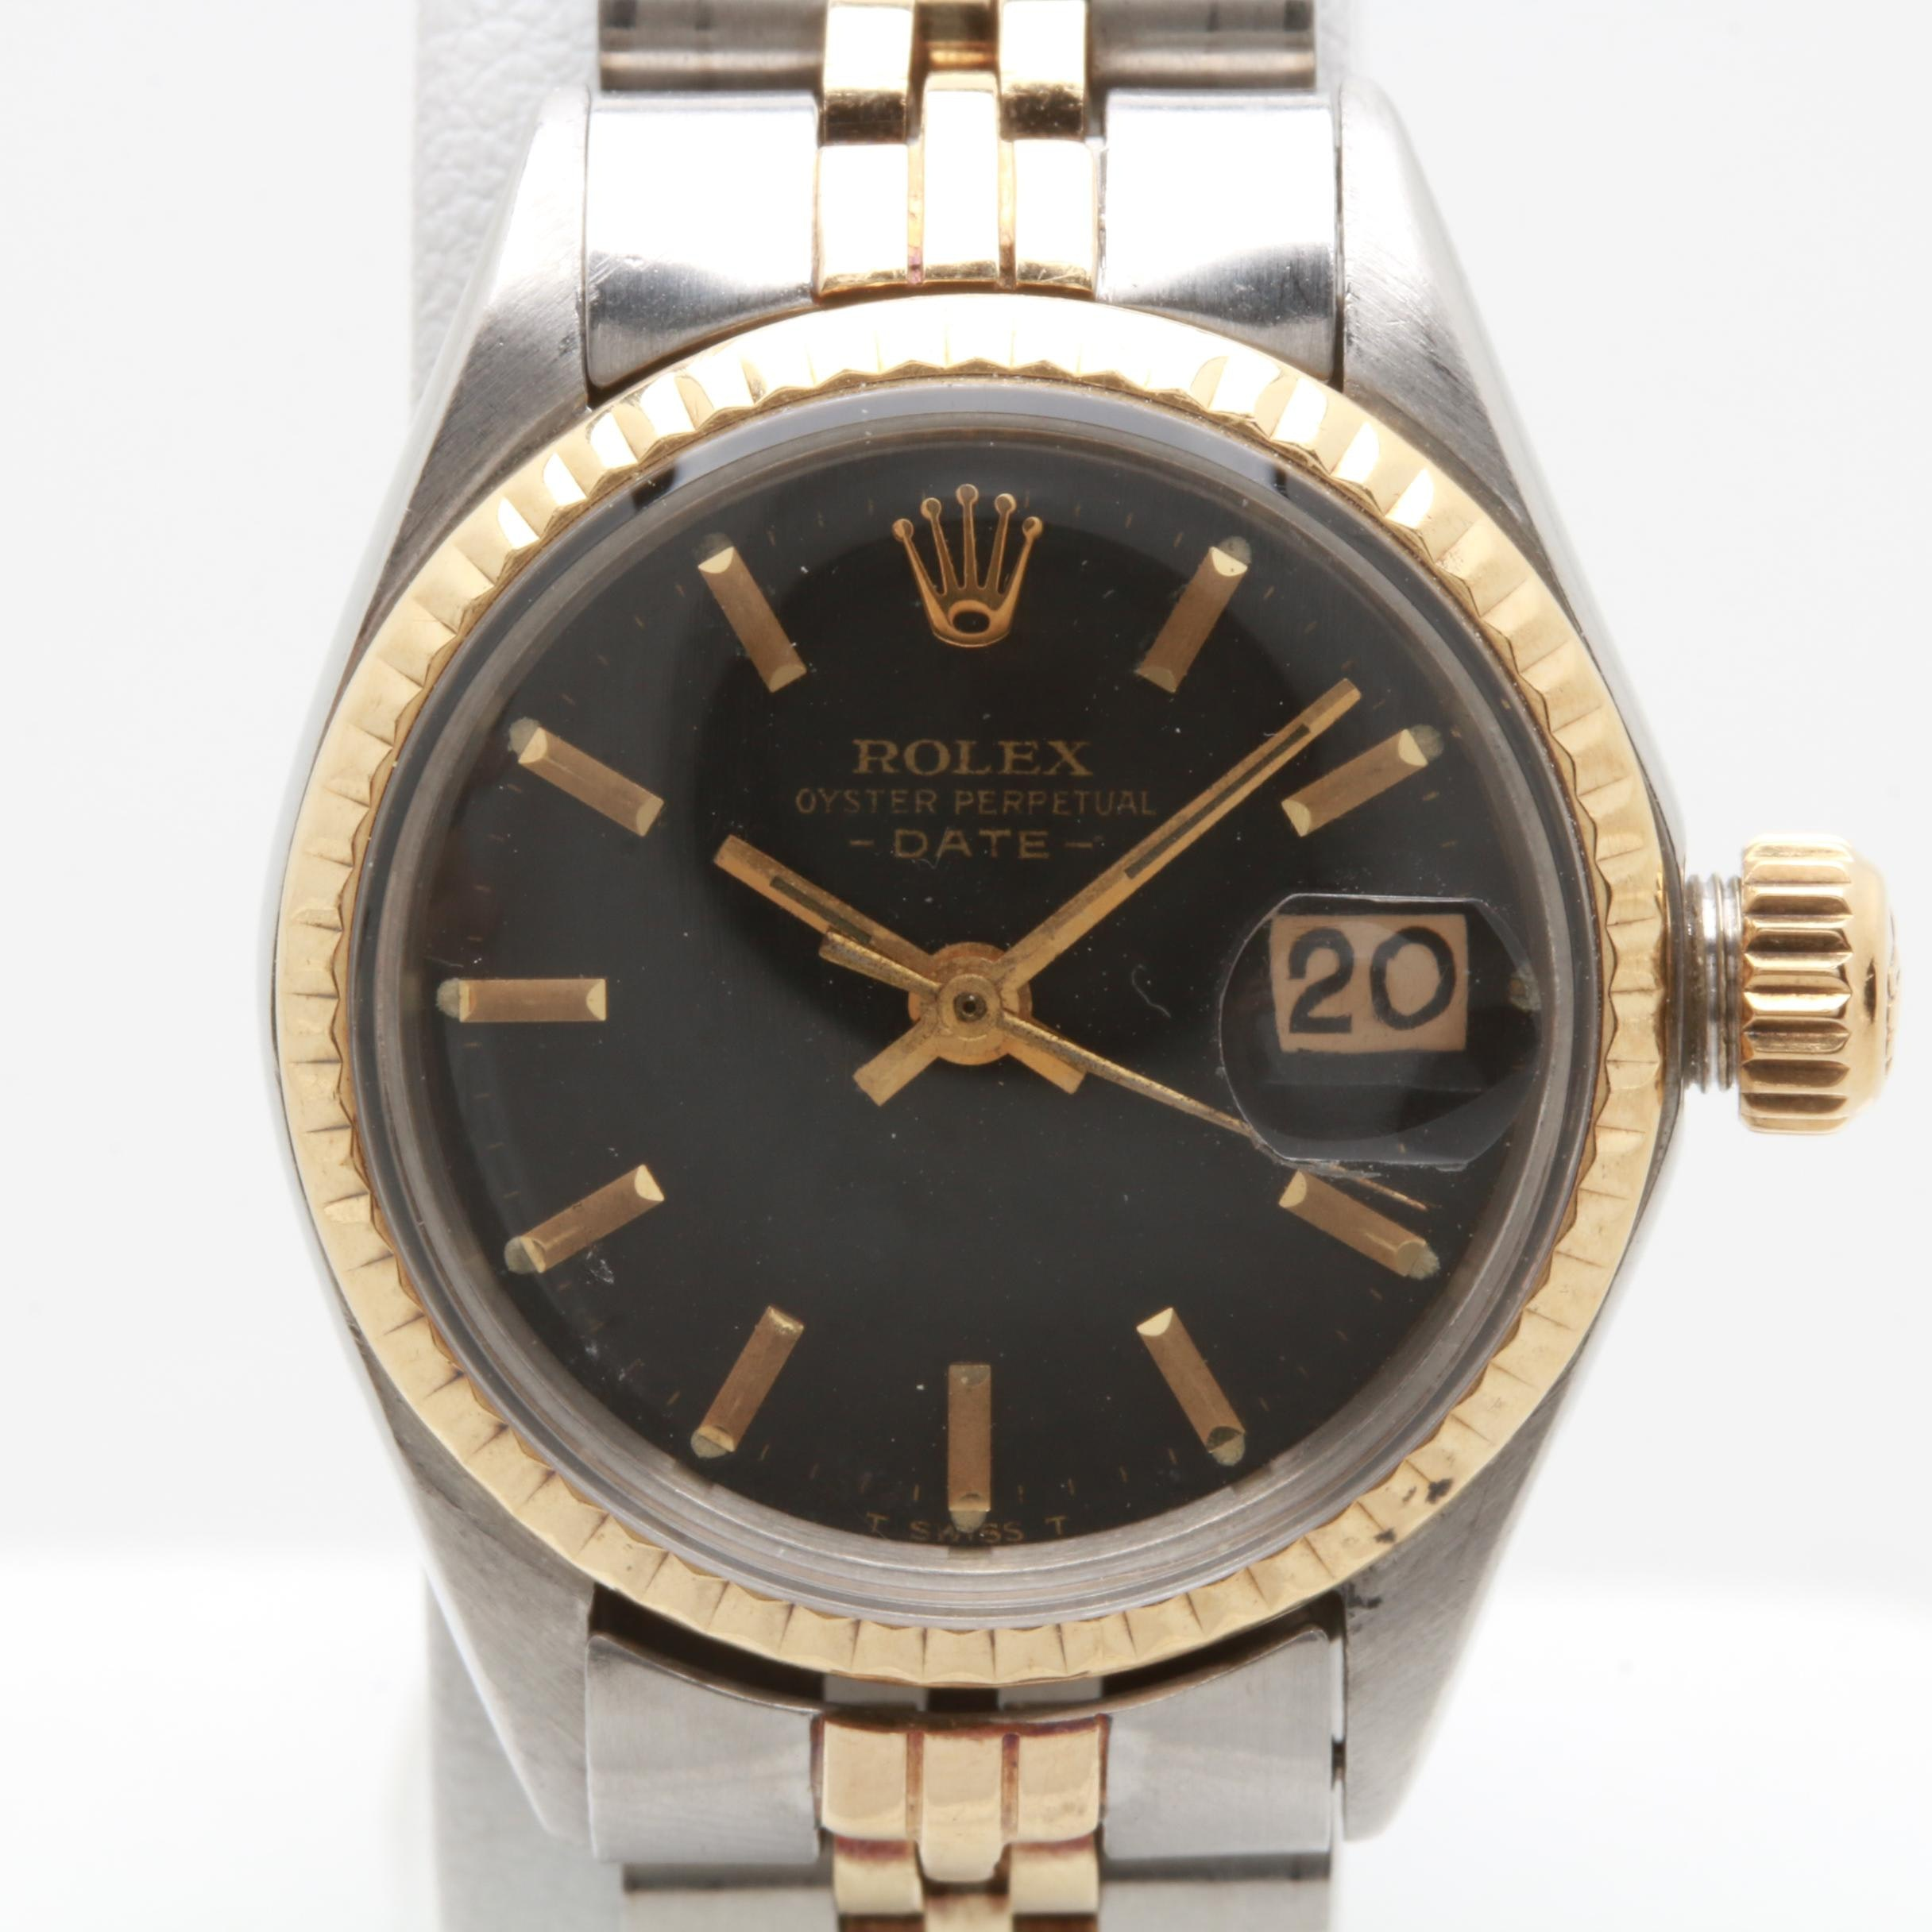 Circa 1971 Rolex Stainless Steel and 14K Yellow Gold Wristwatch